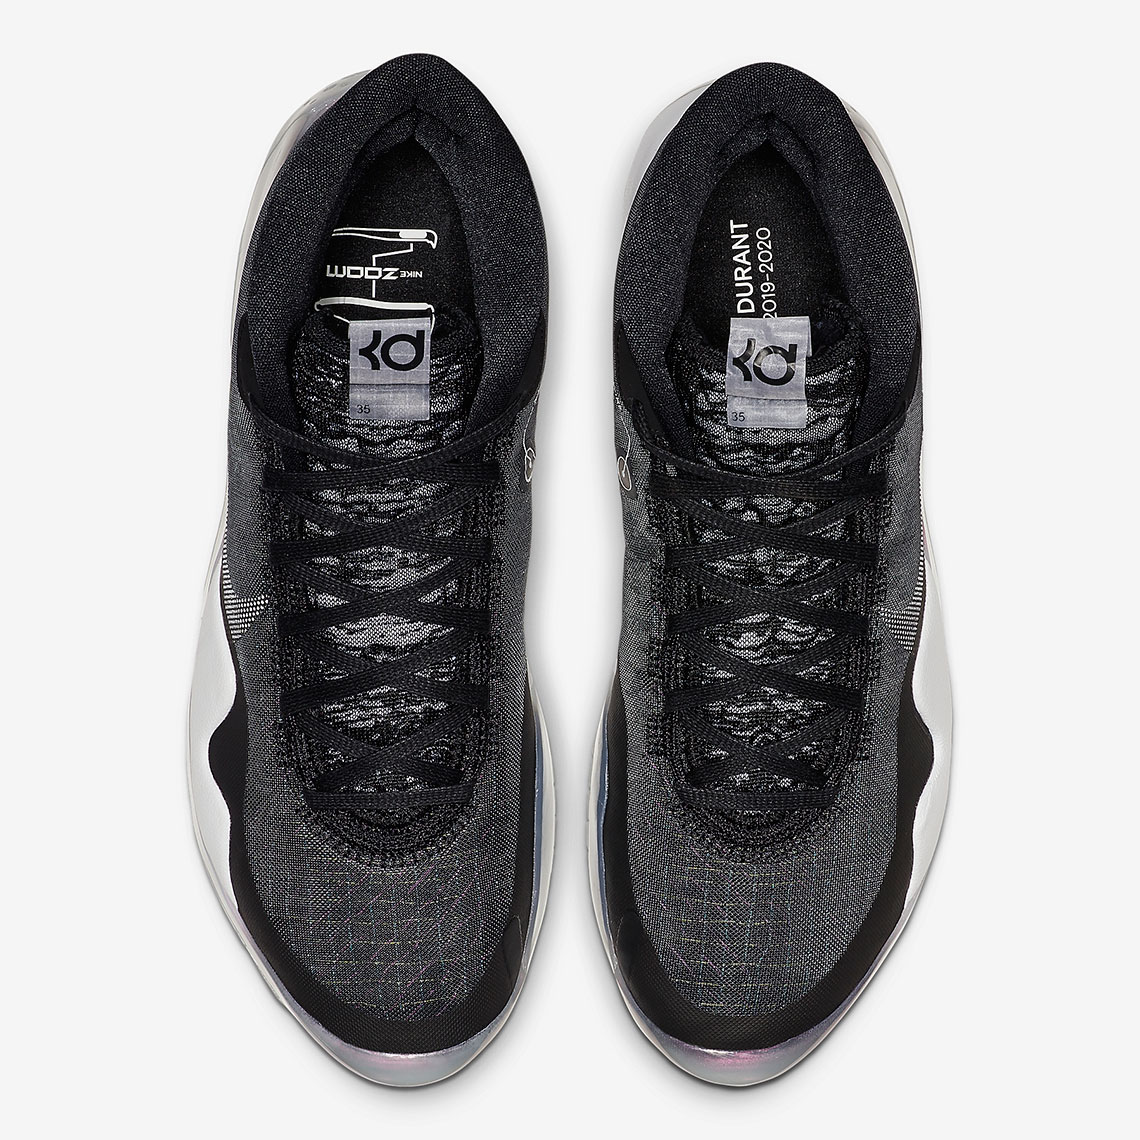 4c1dffefb0e6 Where To Buy Nike KD 12 Black White Kevin Durant Shoes